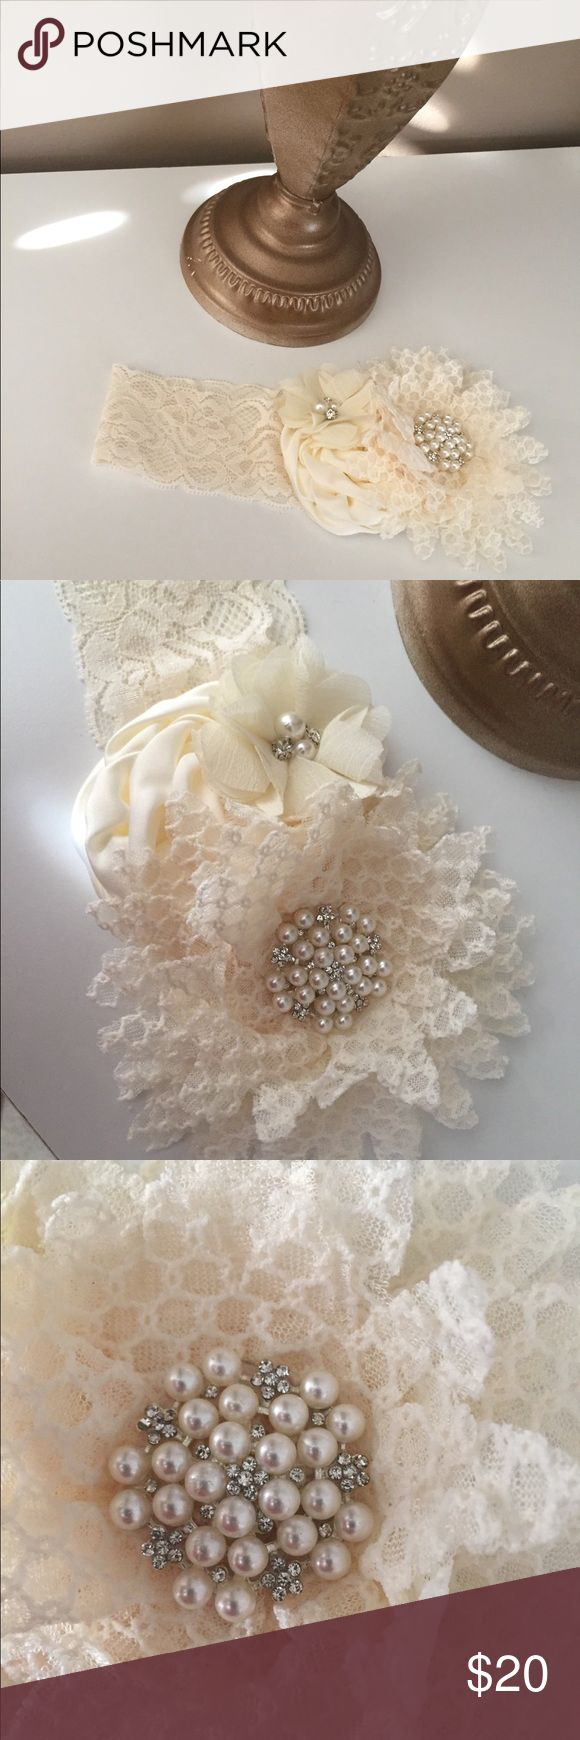 Gorgeous kids headband New, ivory, flowers, pearl and stone accents, stretch lace band . Fits up to about 19 in circumference comfortably. Offers welcome Accessories Hair Accessories